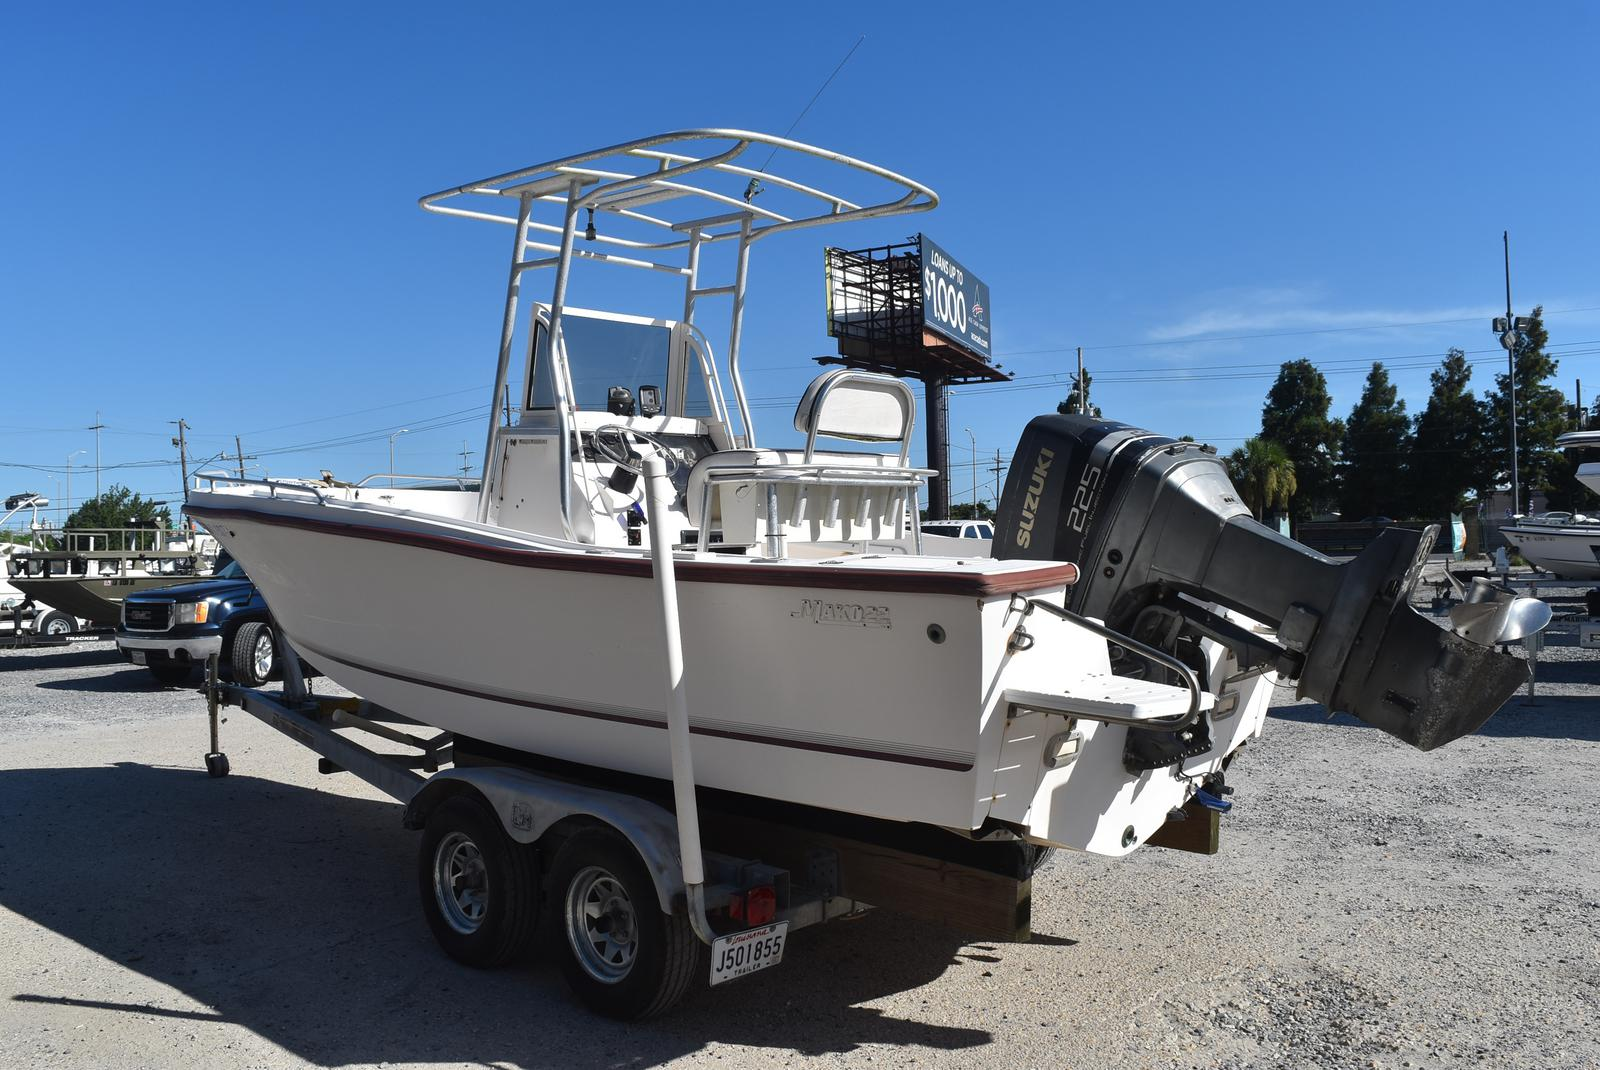 1996 Mako boat for sale, model of the boat is 22 Mako & Image # 121 of 390